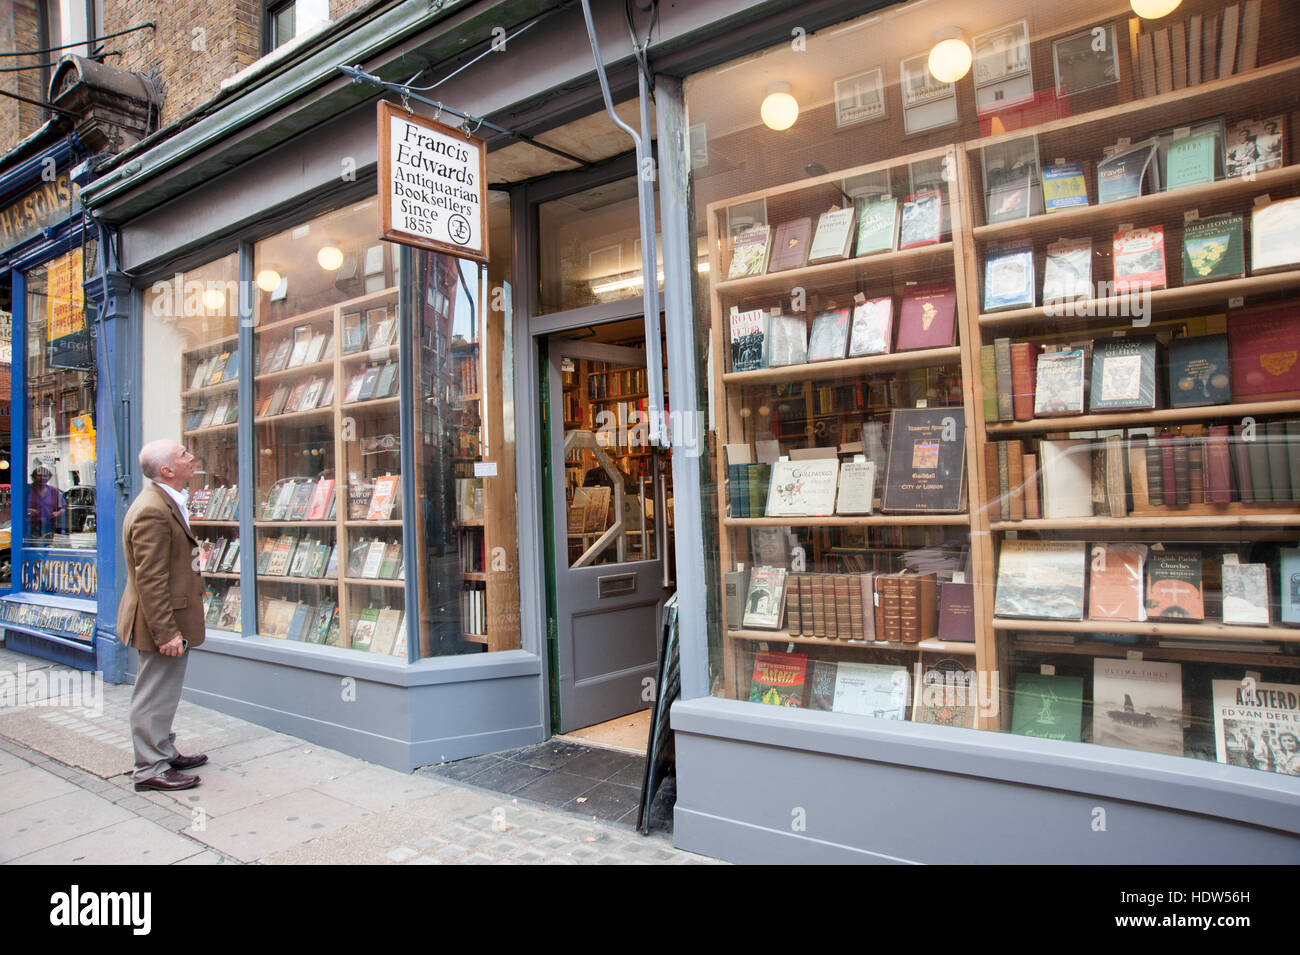 Francis Edwards Antiquarian bookshop in Charing Cross Road, London, England, UK - Stock Image